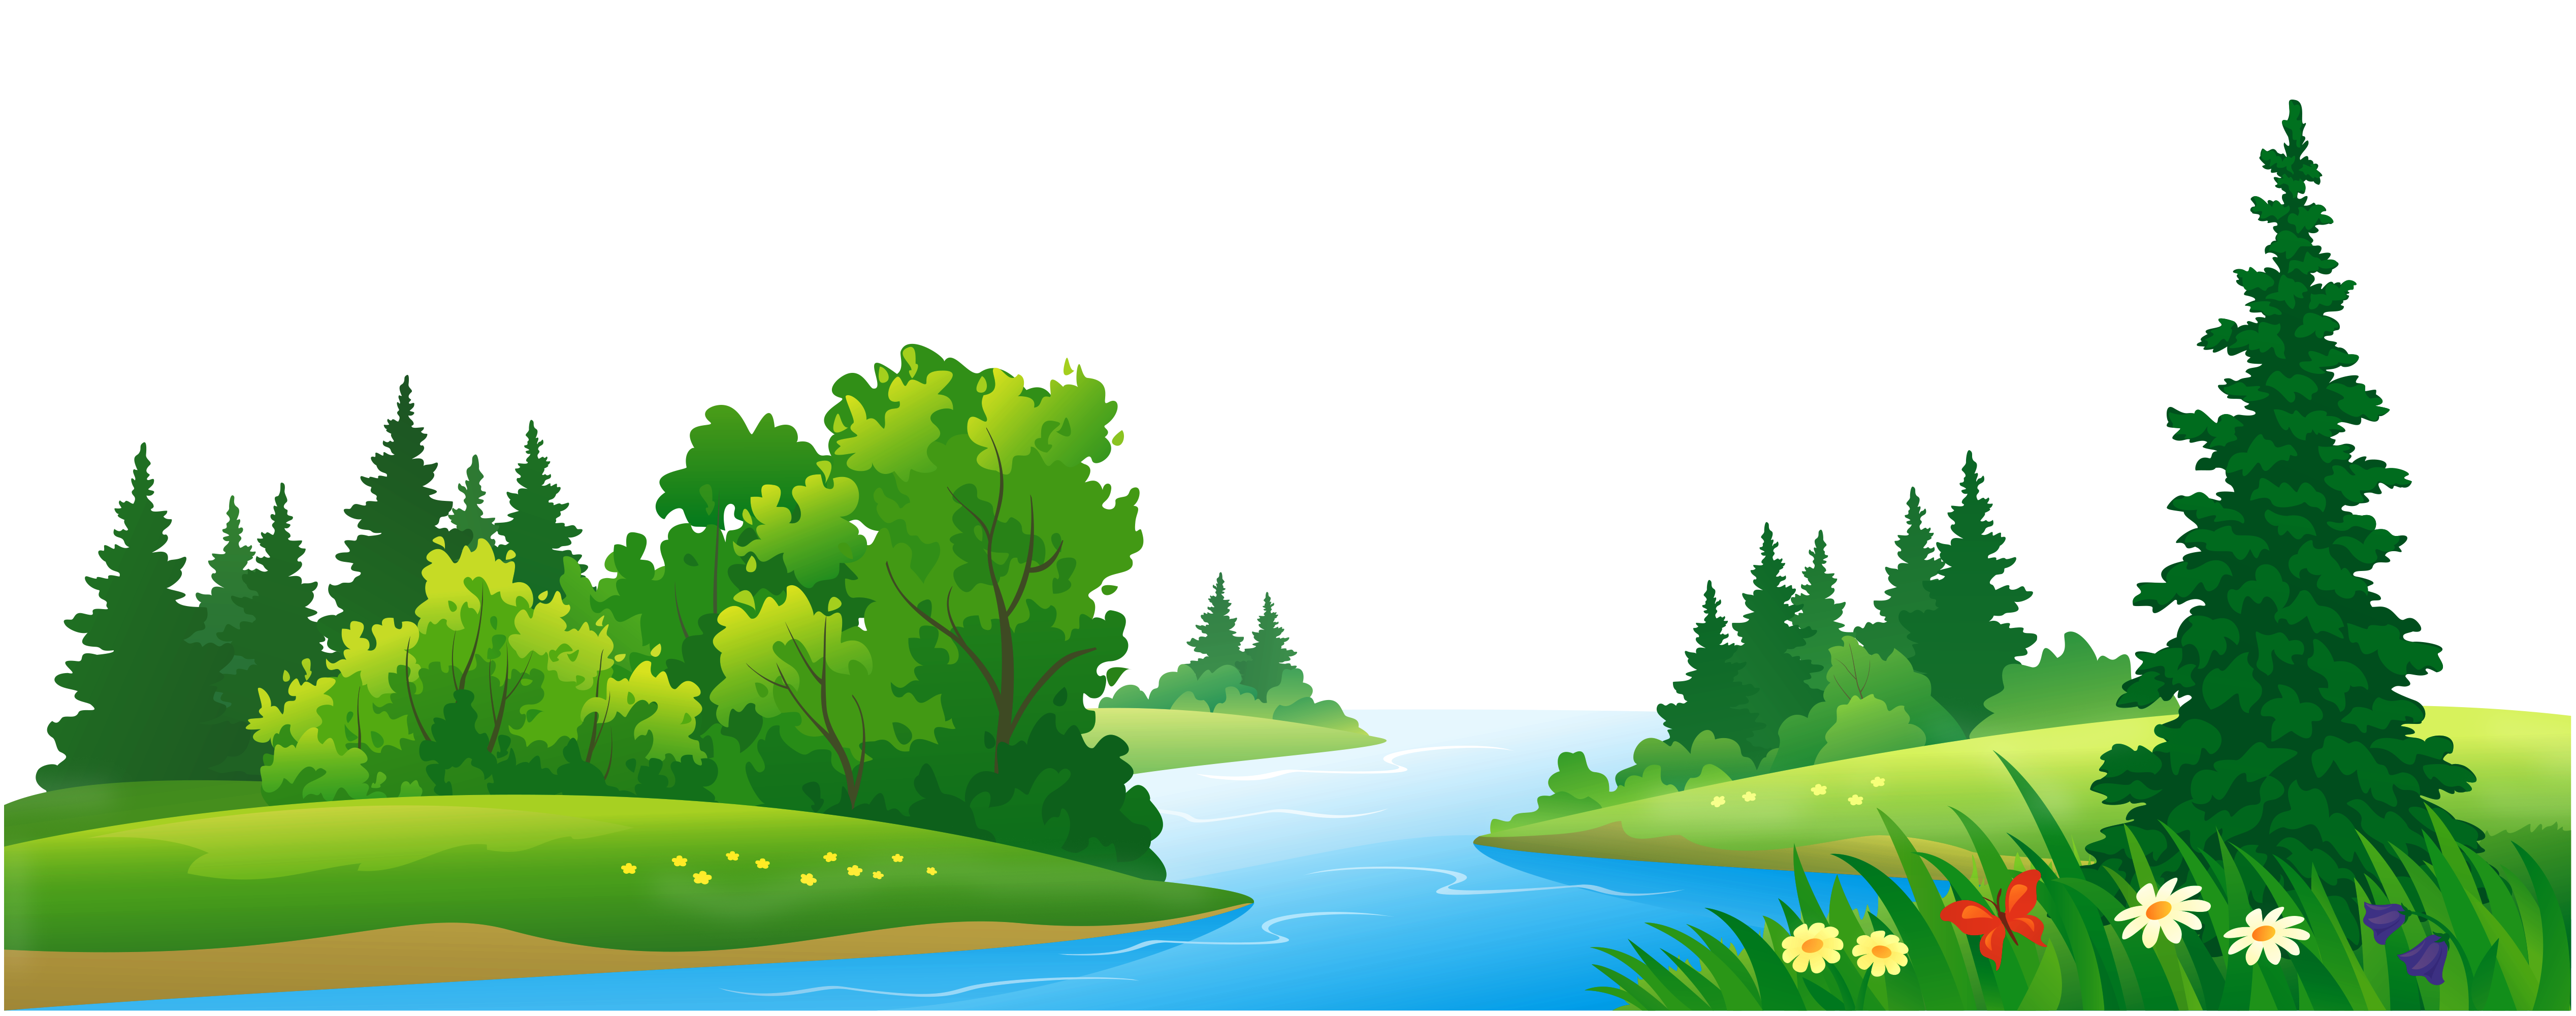 Forest Clipart-forest clipart-4